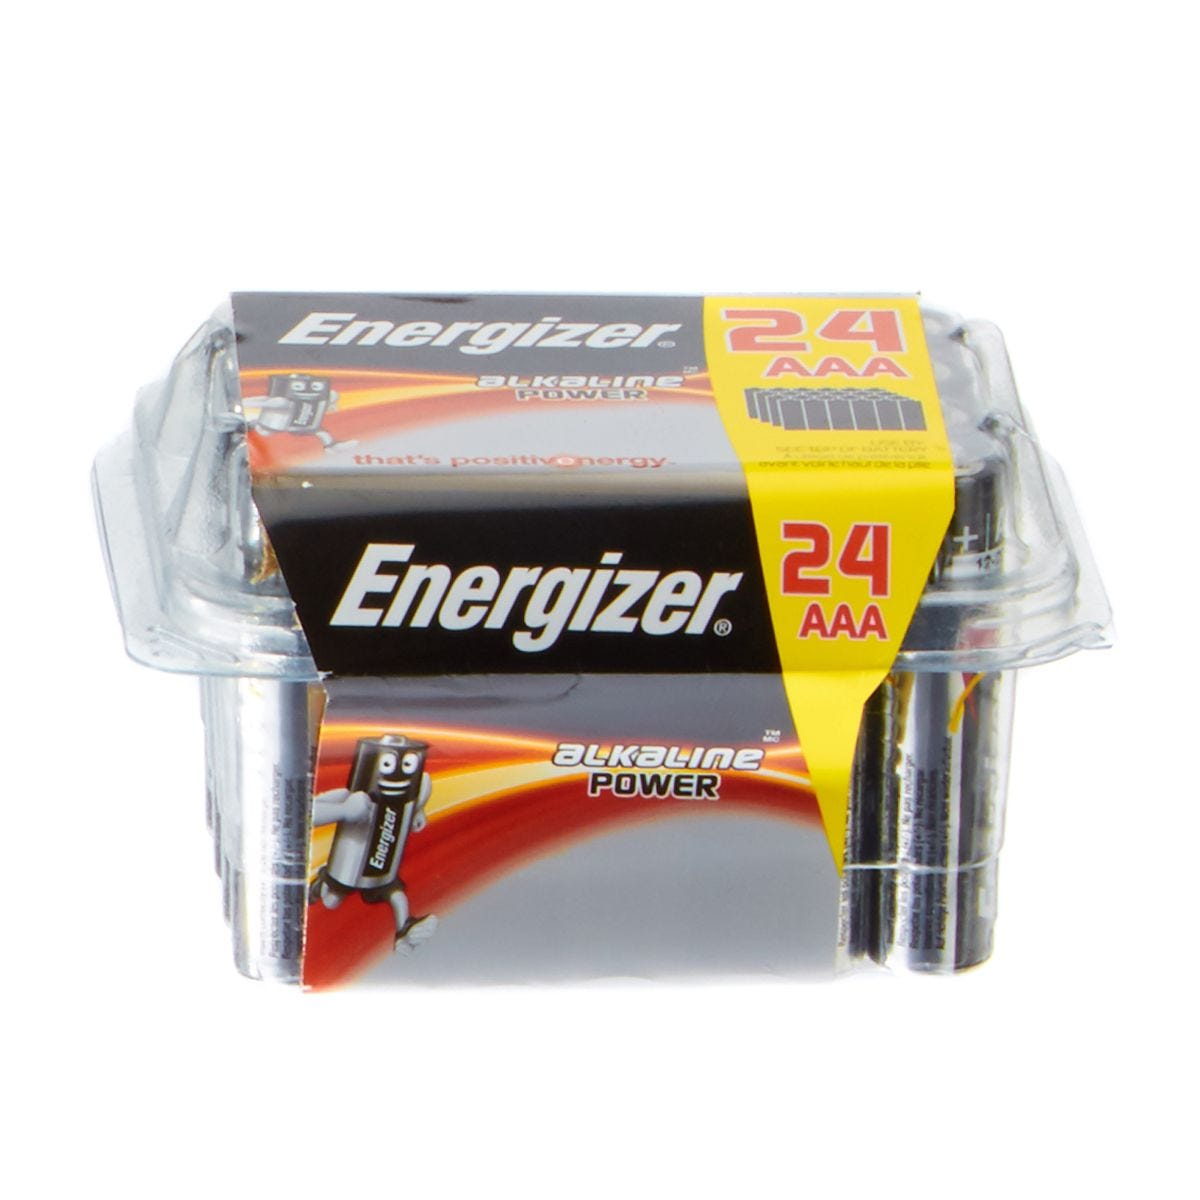 Image of Energizer AAA 24 Value Pack